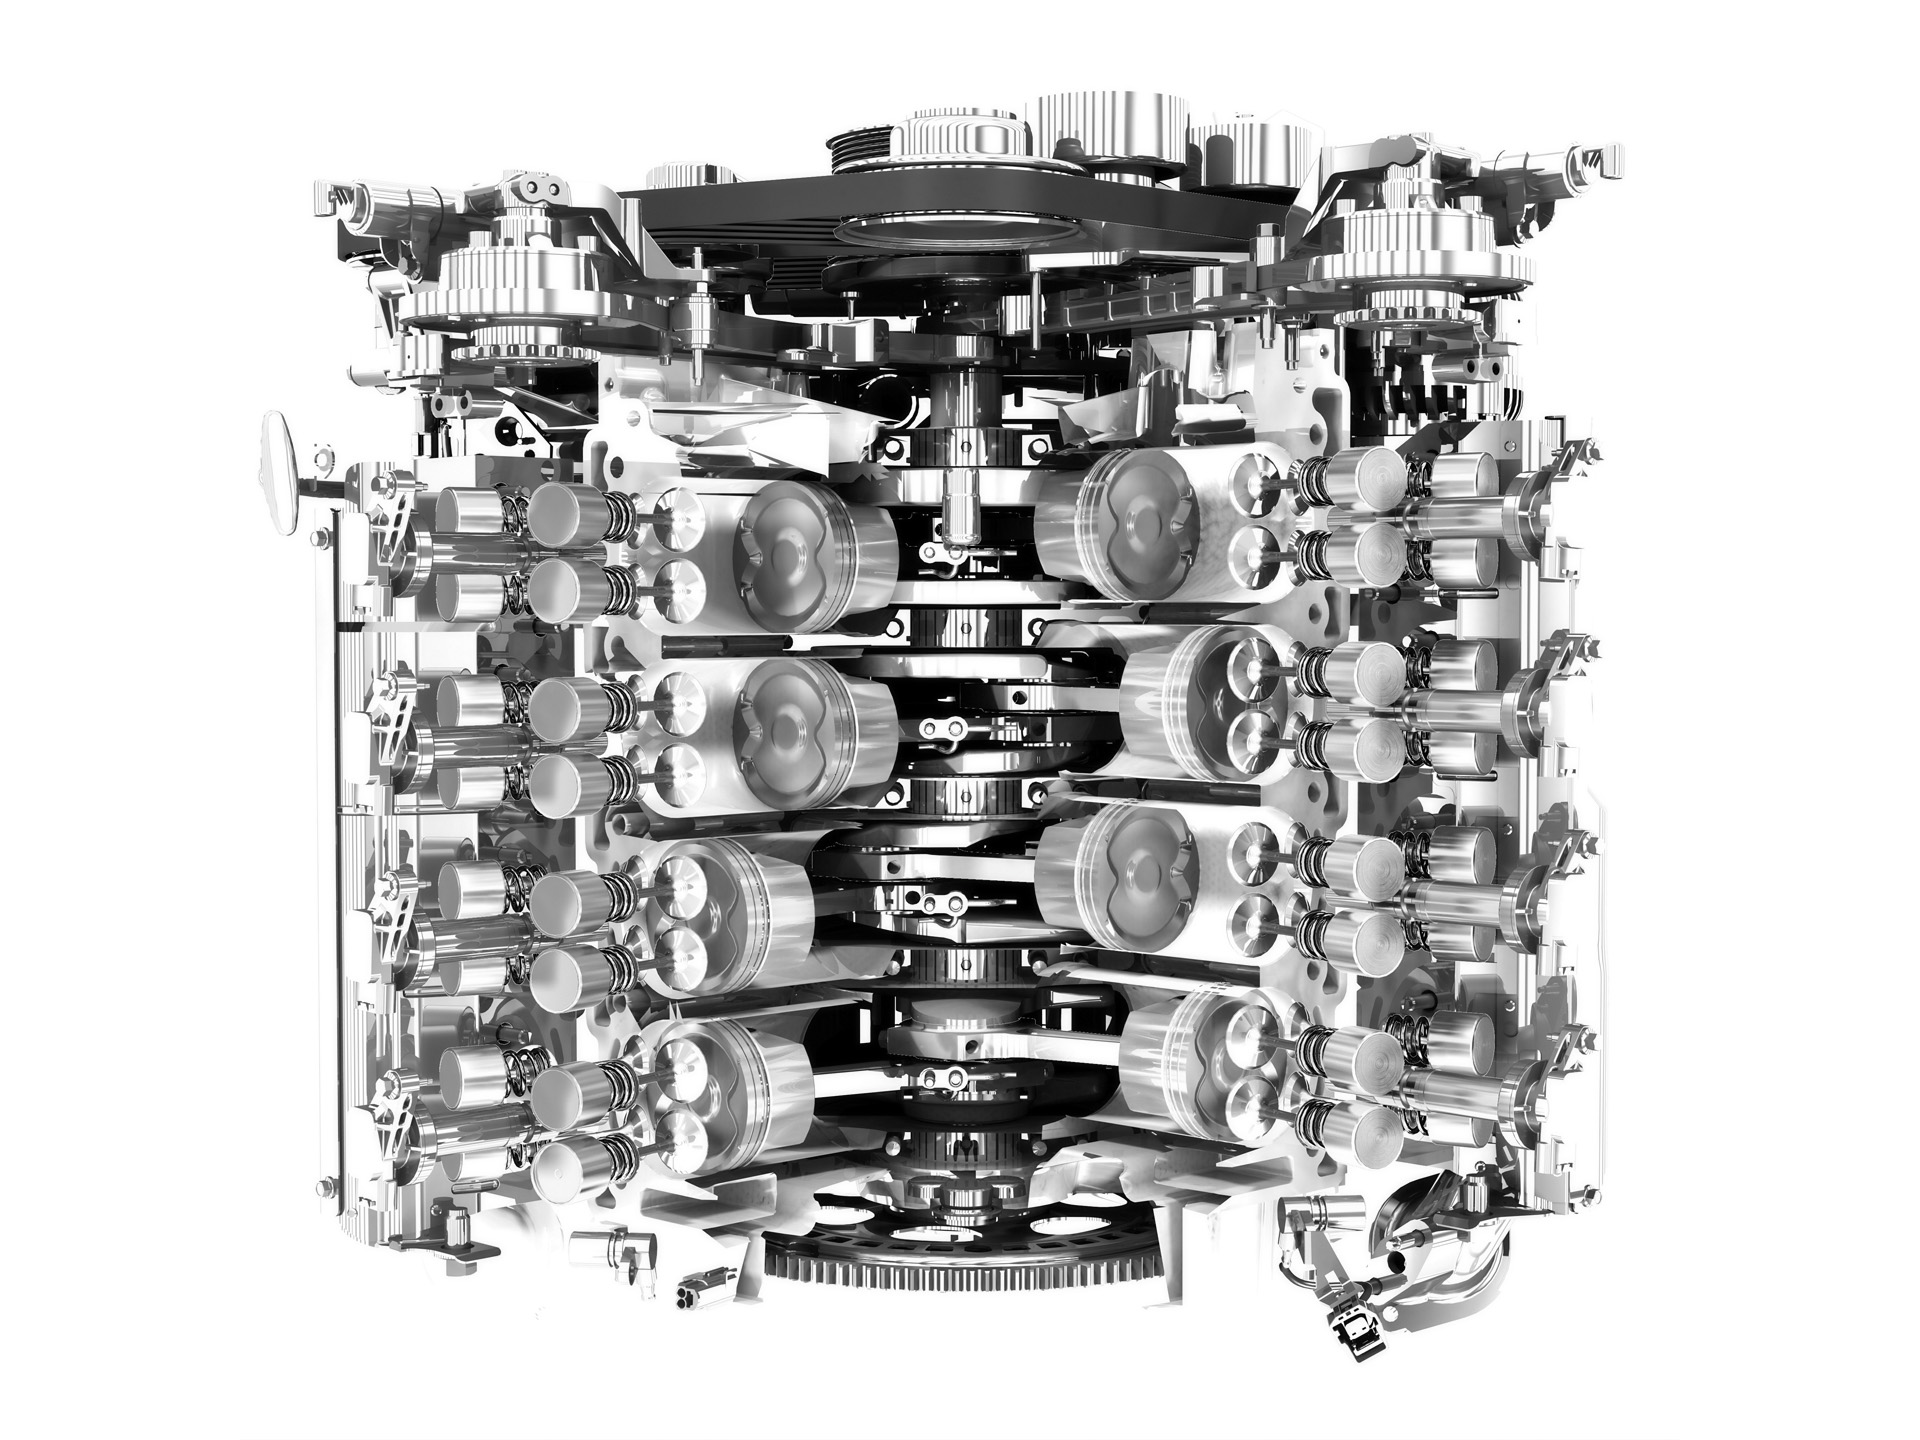 Sample P1295 Engine